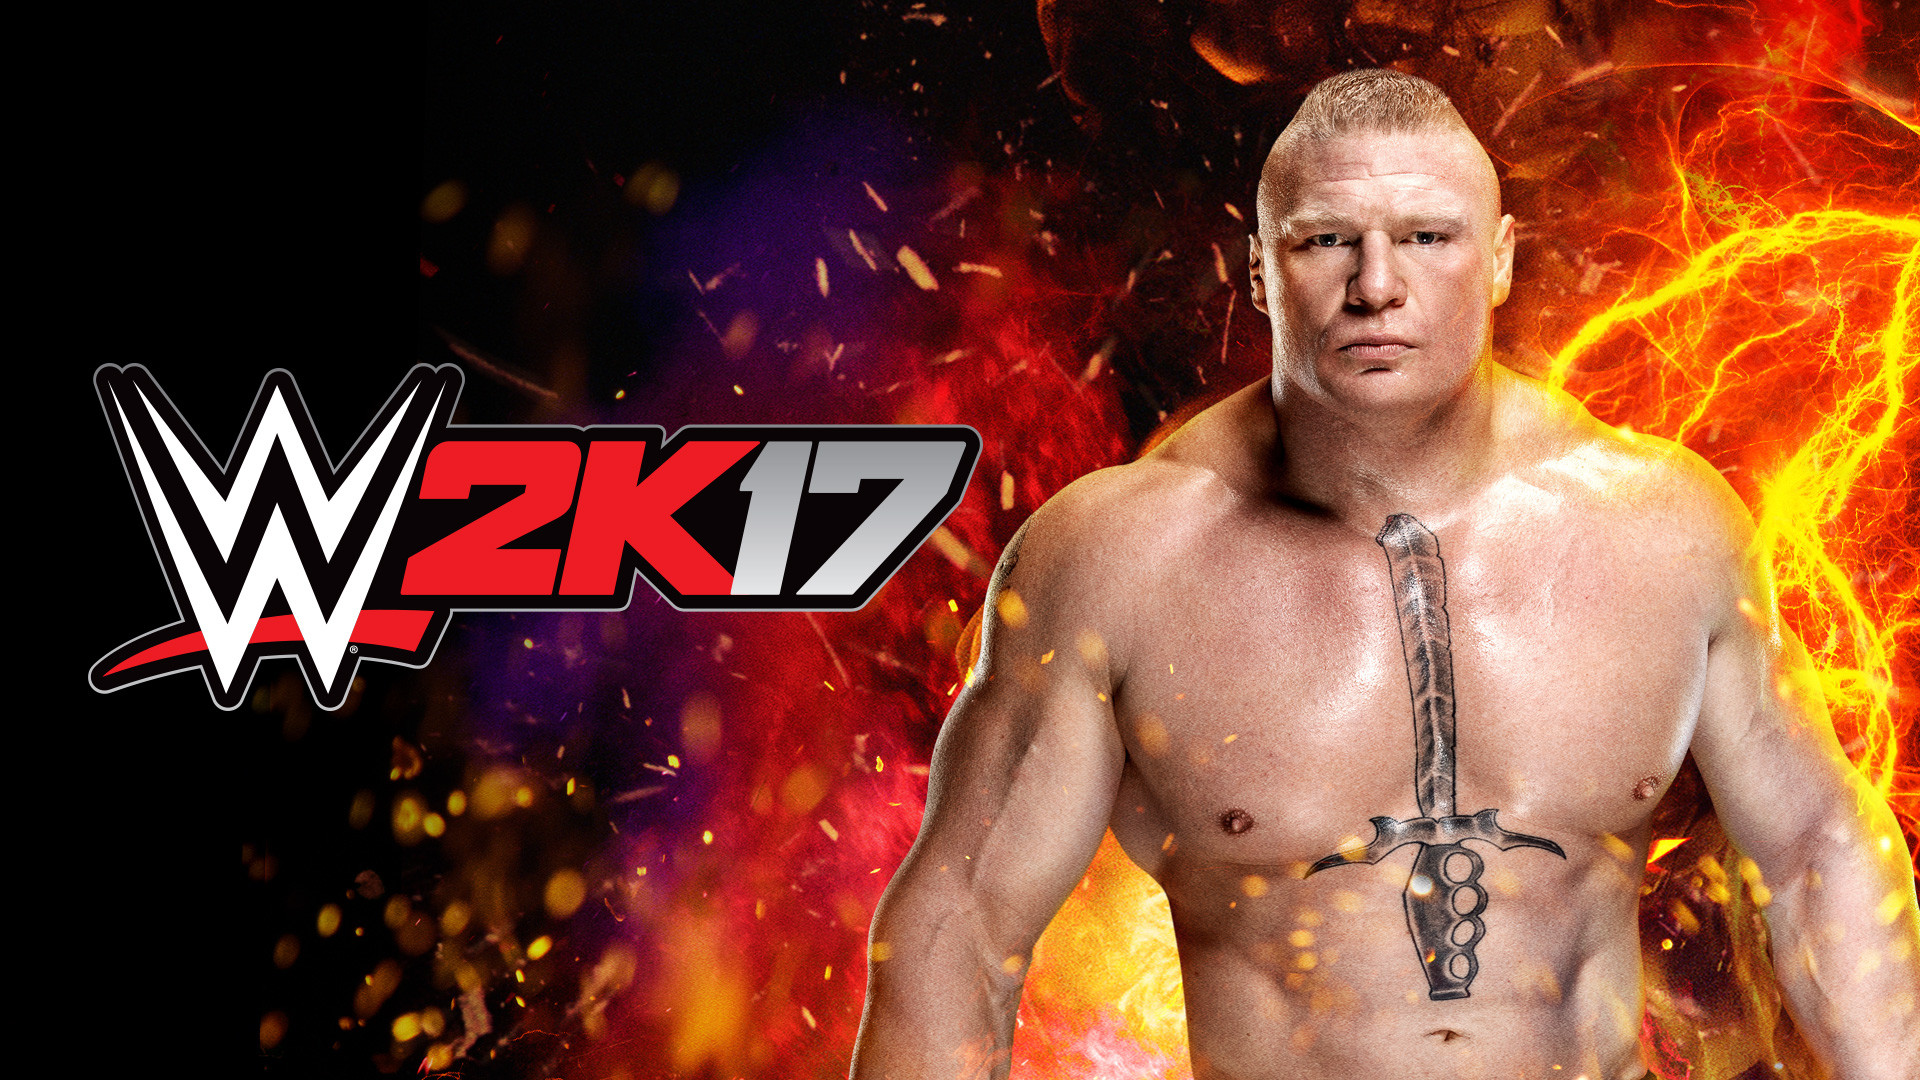 2K17 Brock Lesnar Wallpaper Artwork